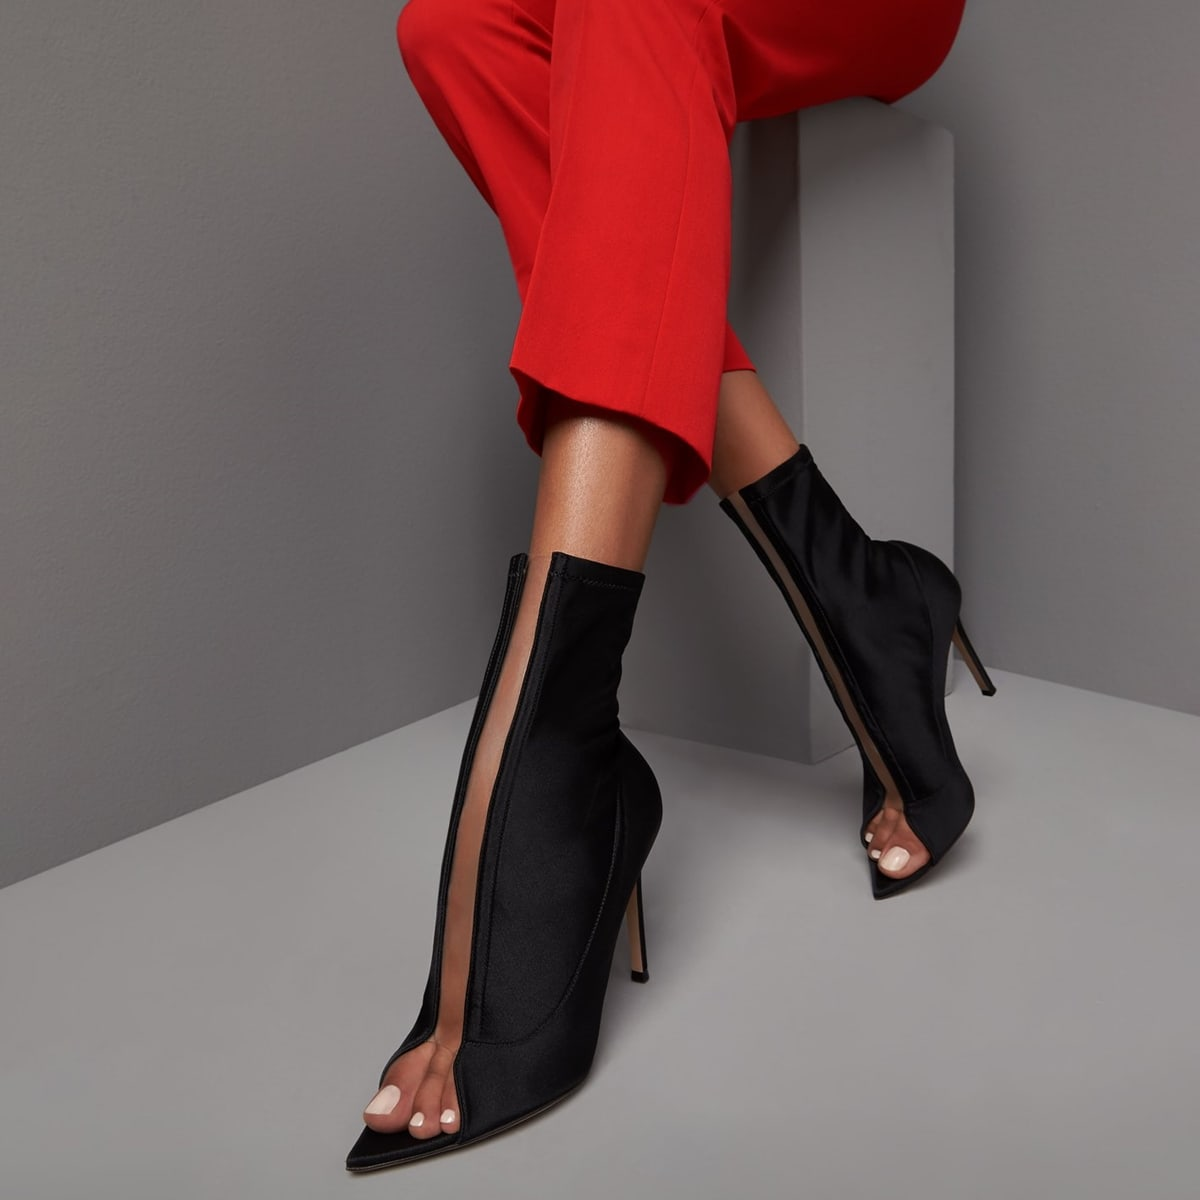 Cut from a stretch material, these black booties feature a rubber panel creating a cutout illusion